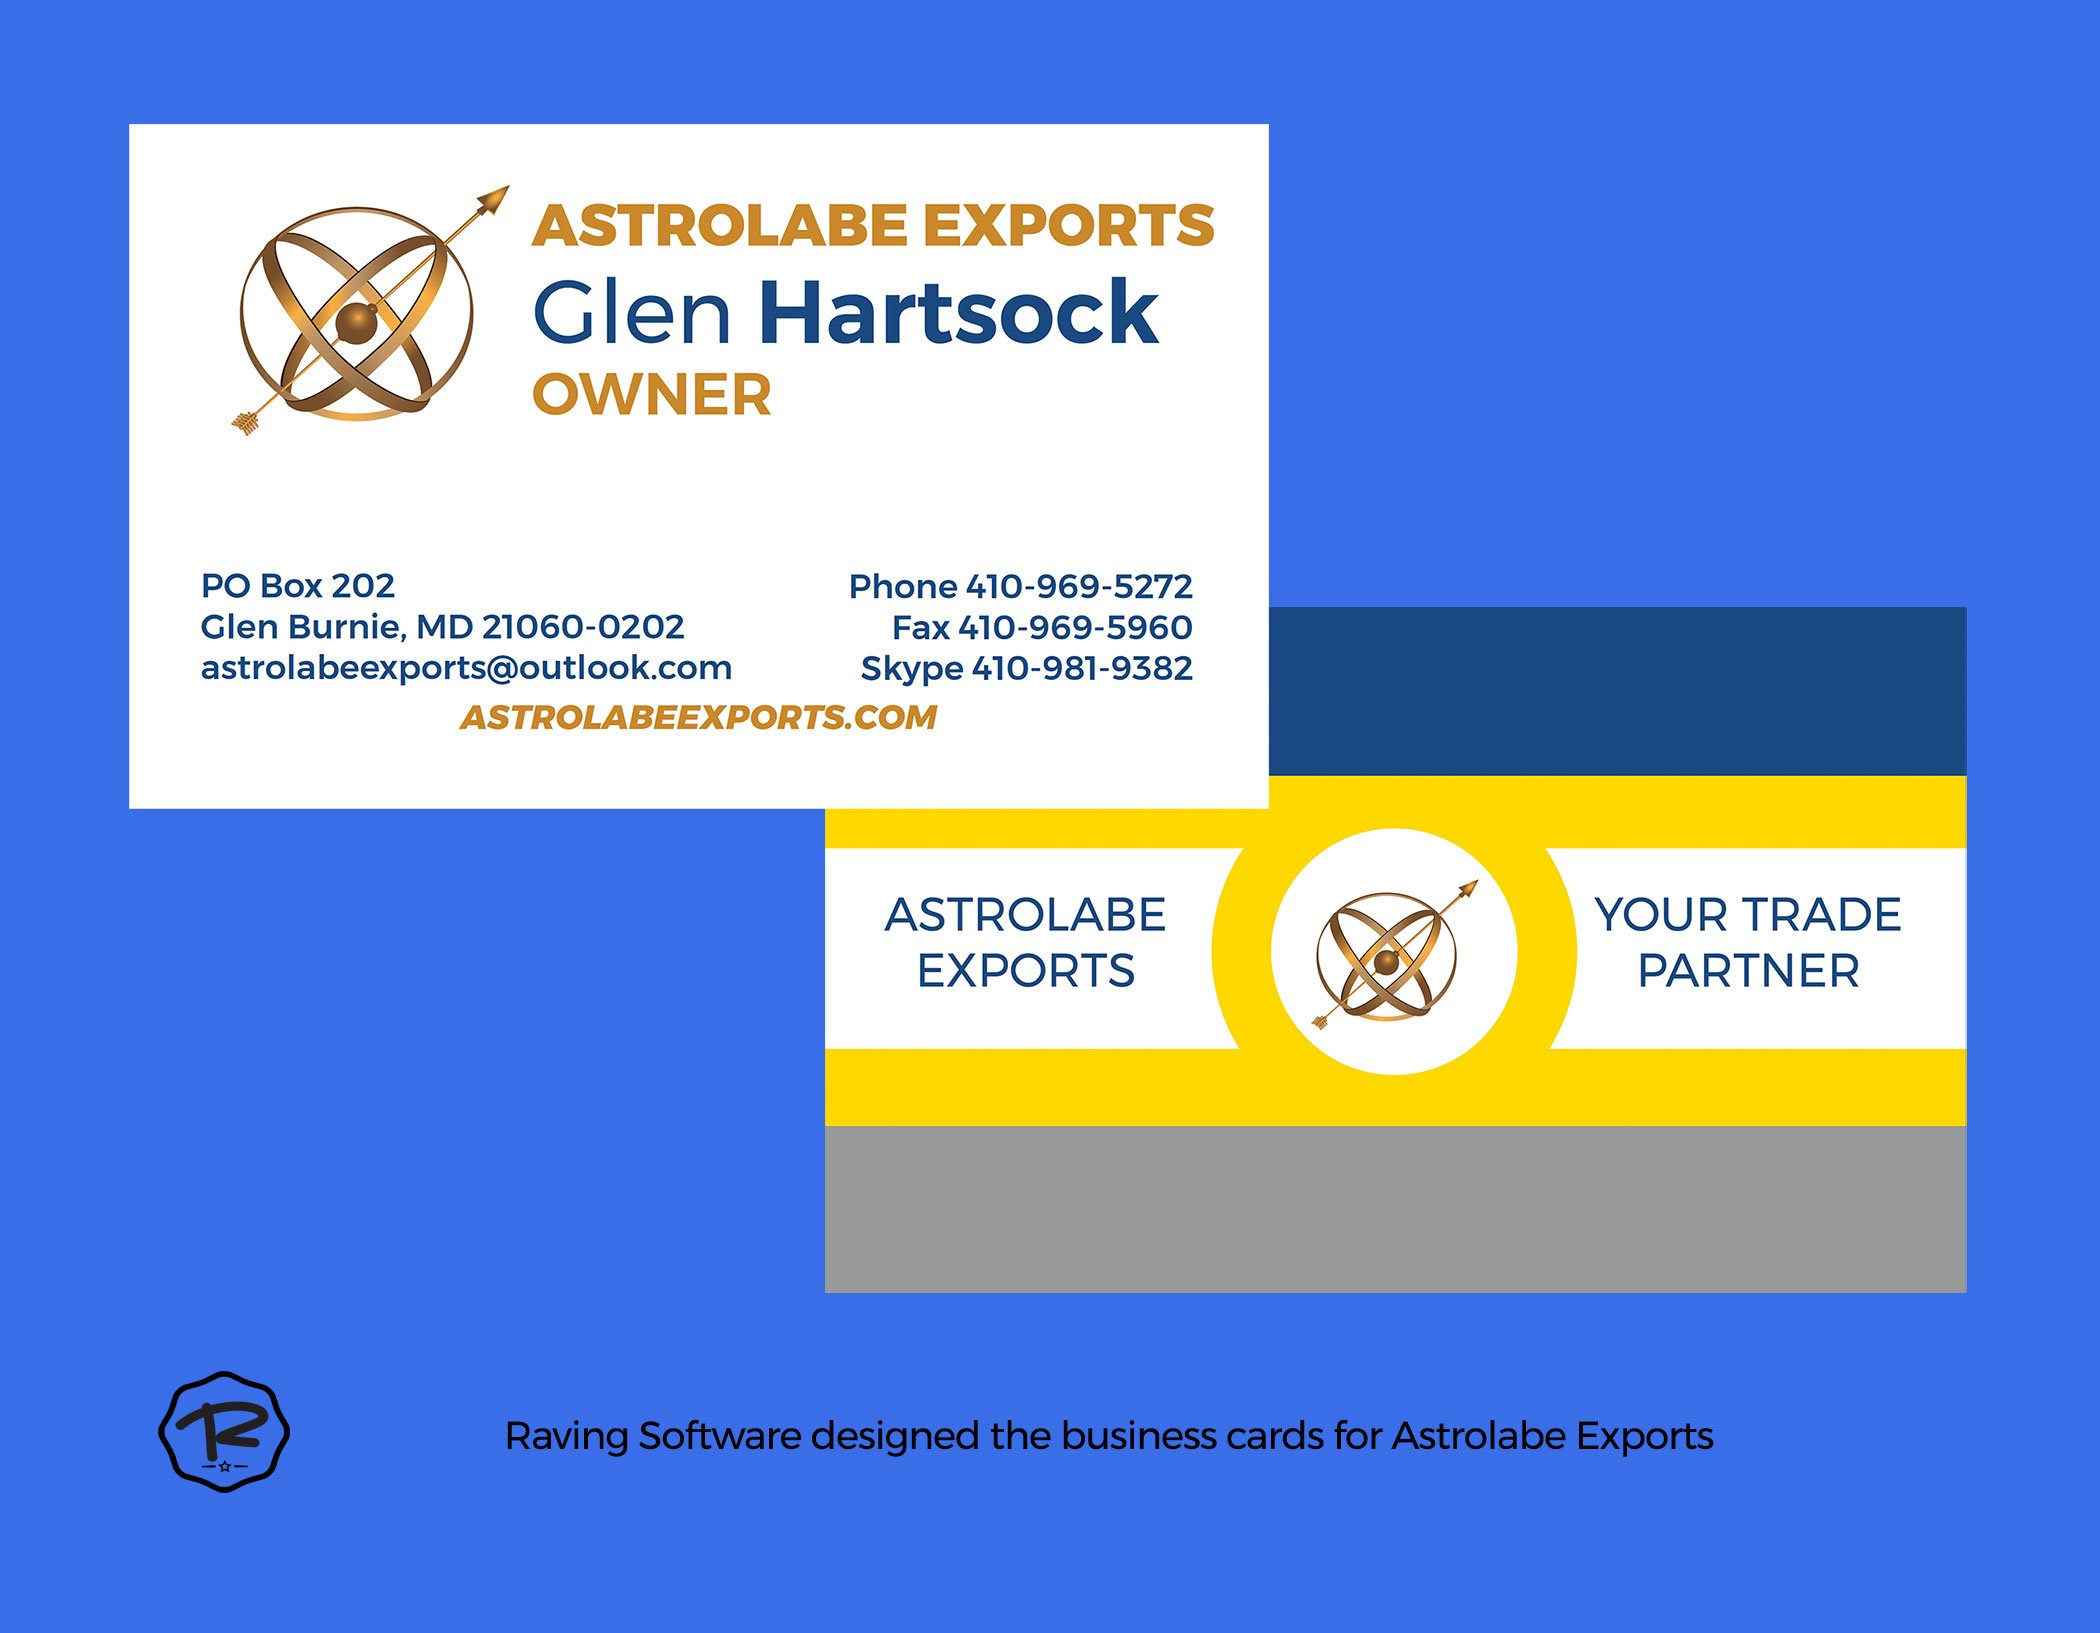 Astrolabe Exports business card design by Raving Software